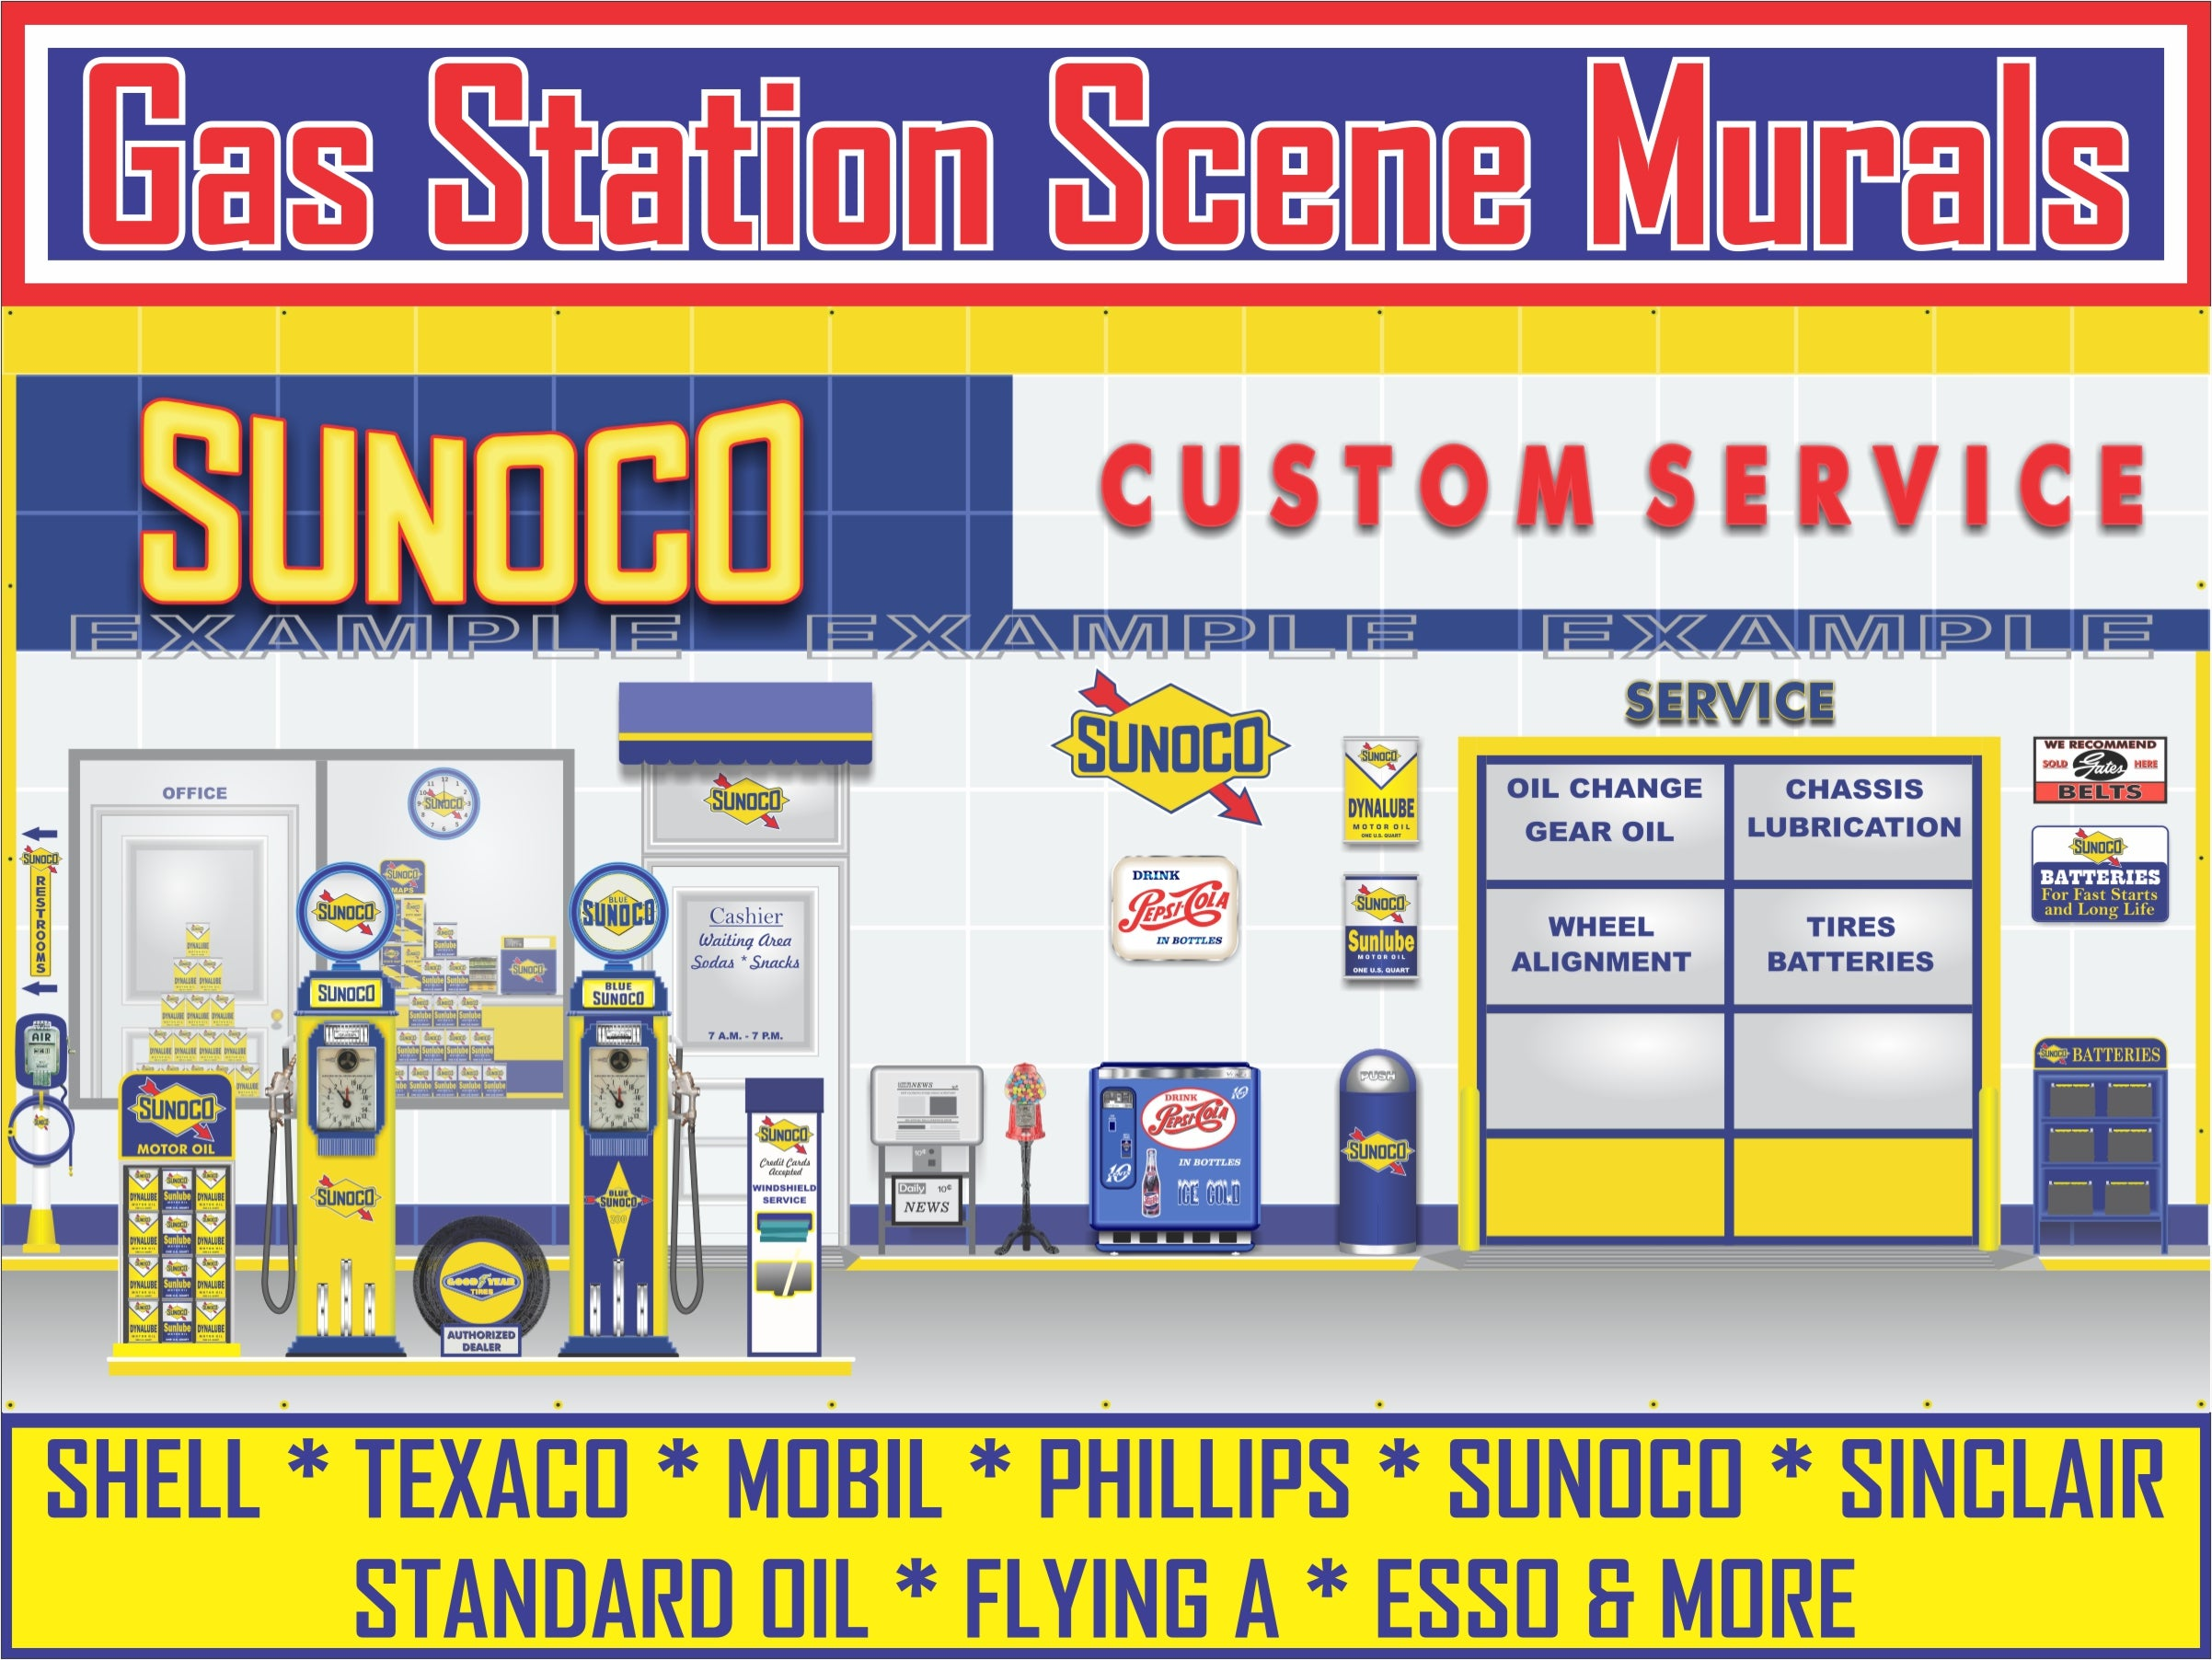 GAS STATION SCENE MURALS